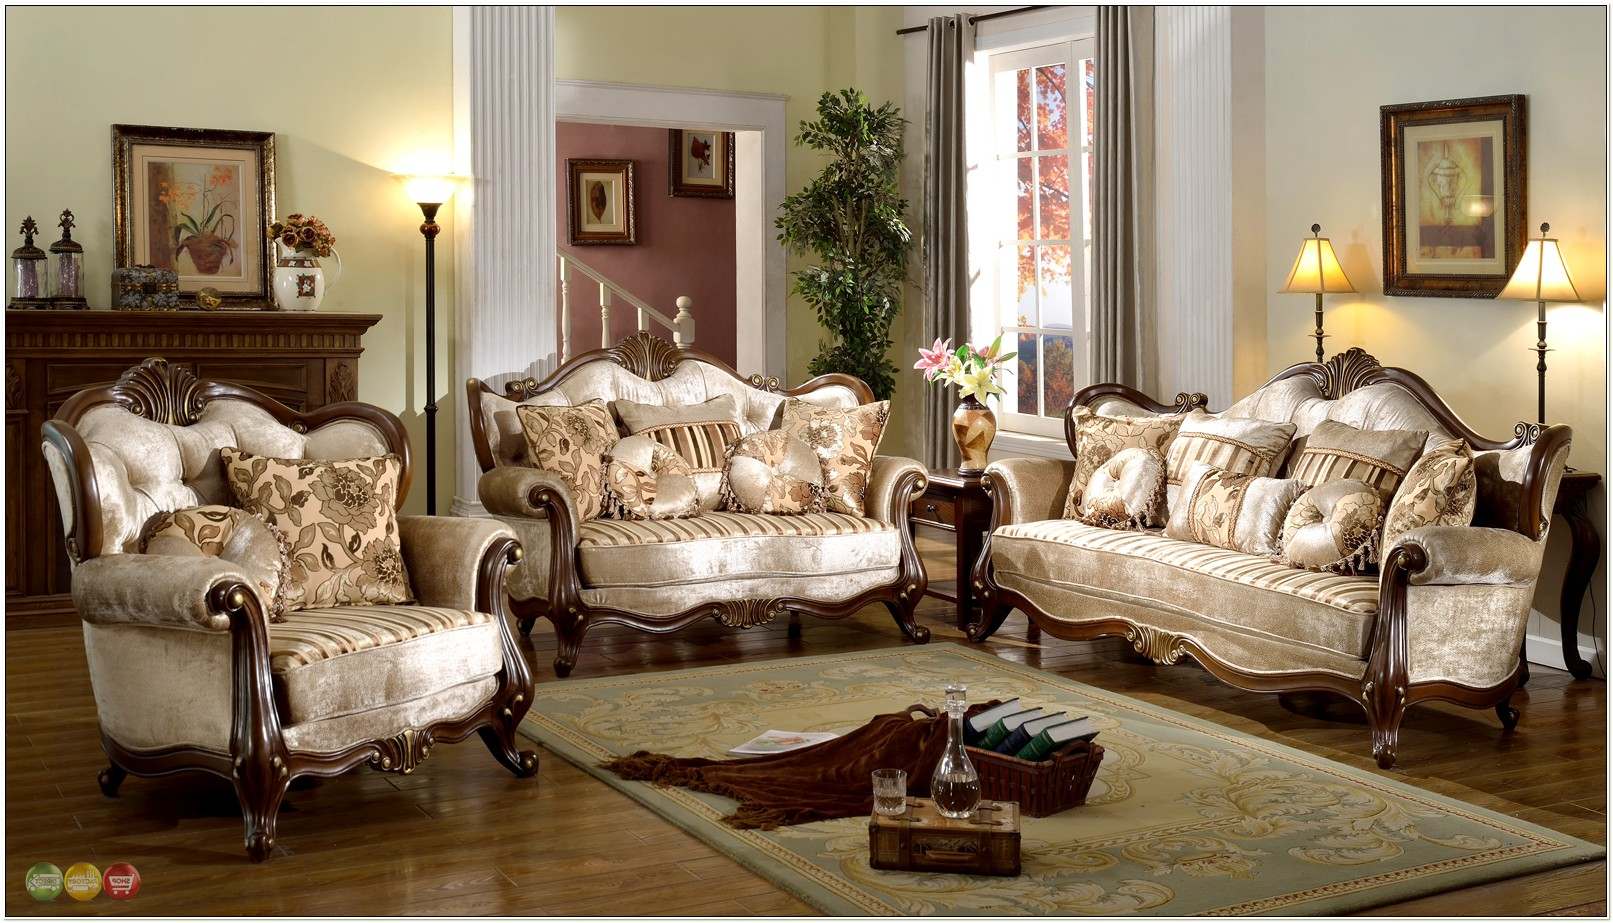 Used French Provincial Furniture Ebay